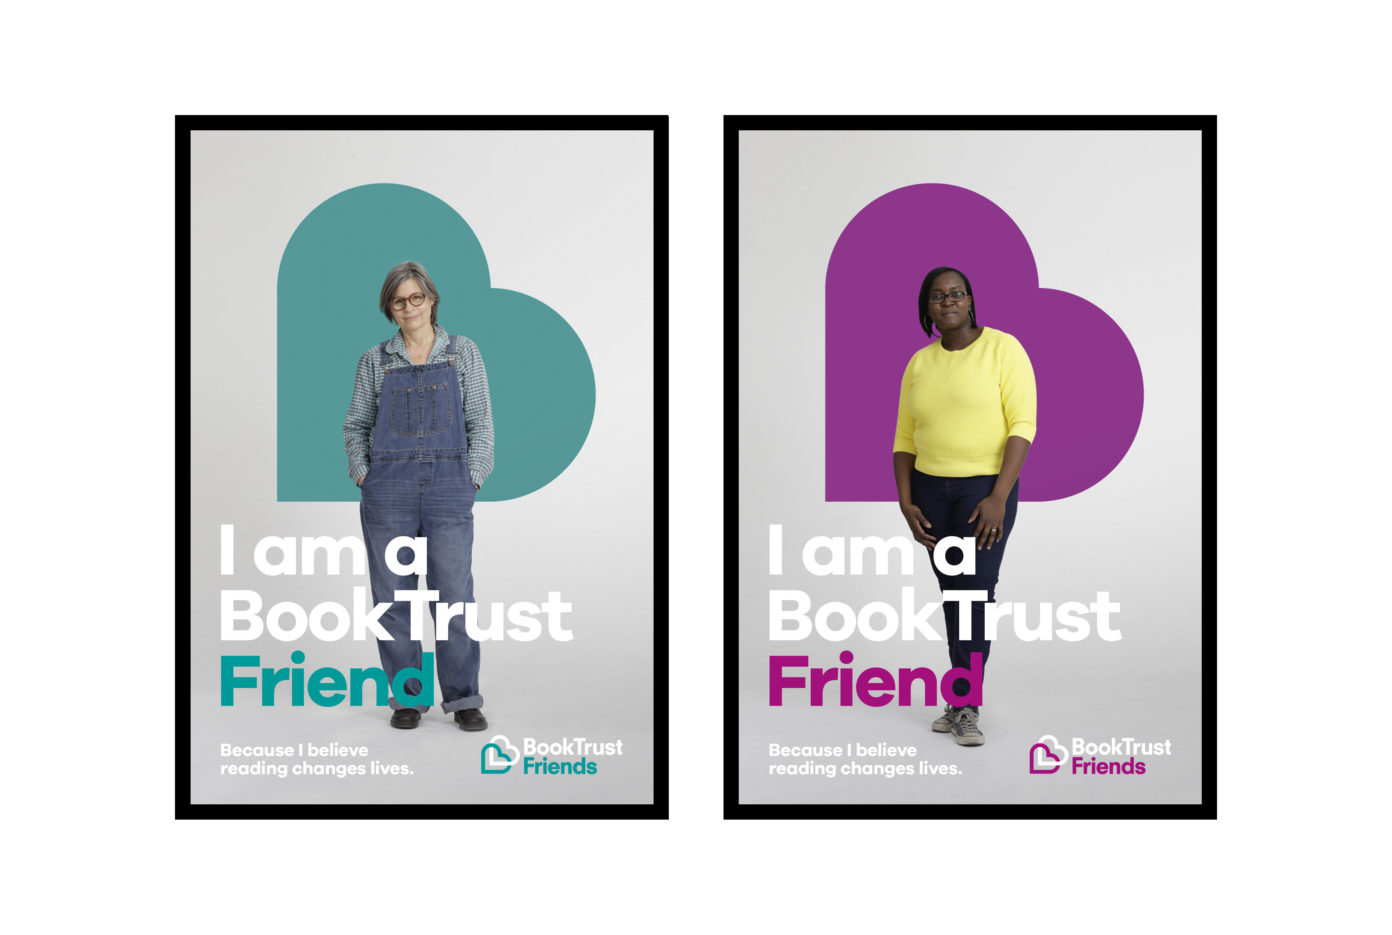 Book Trust Friends Identity Large Image 1400x940 9